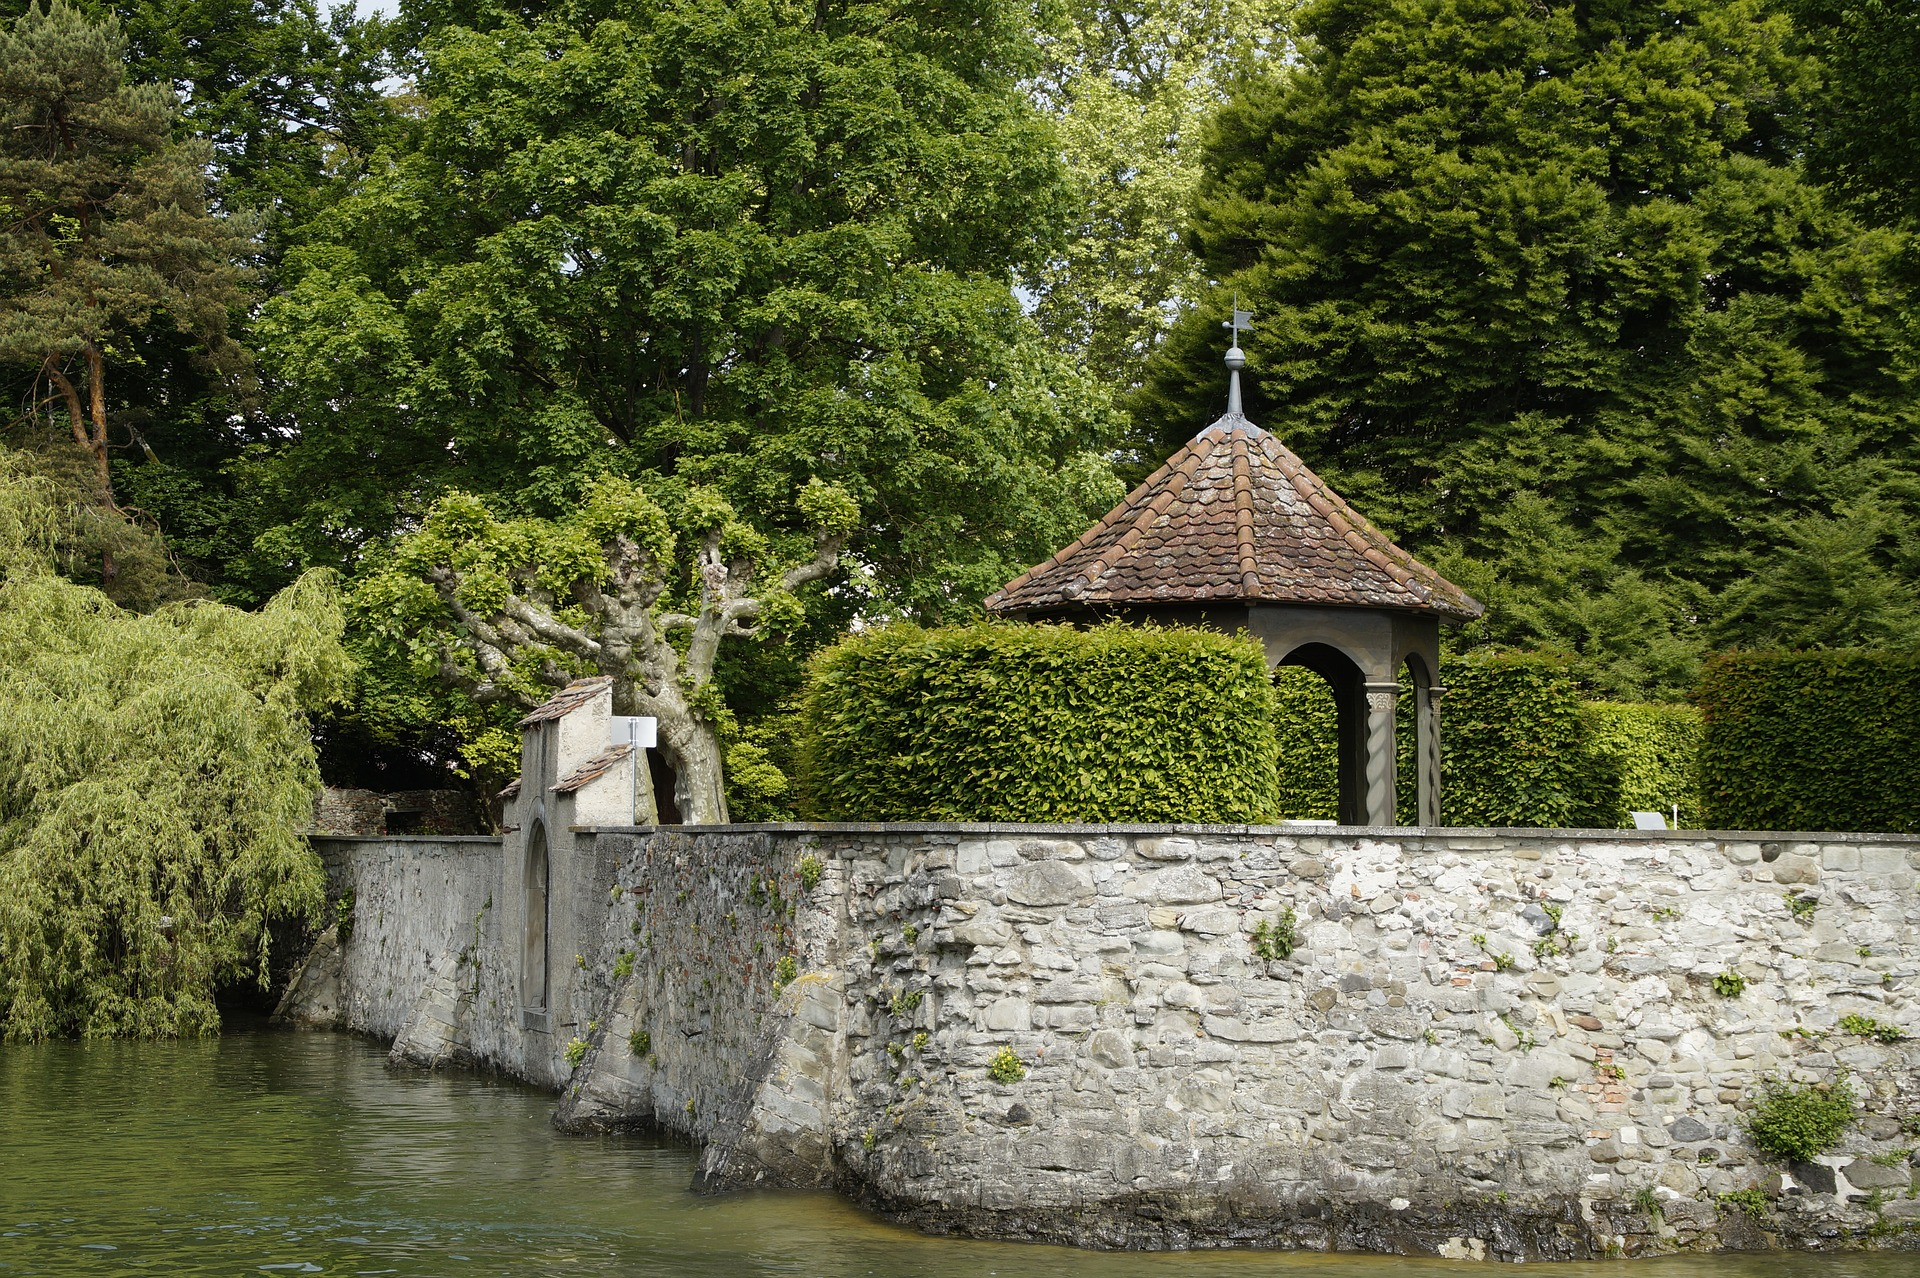 Moated-castle px.jpg